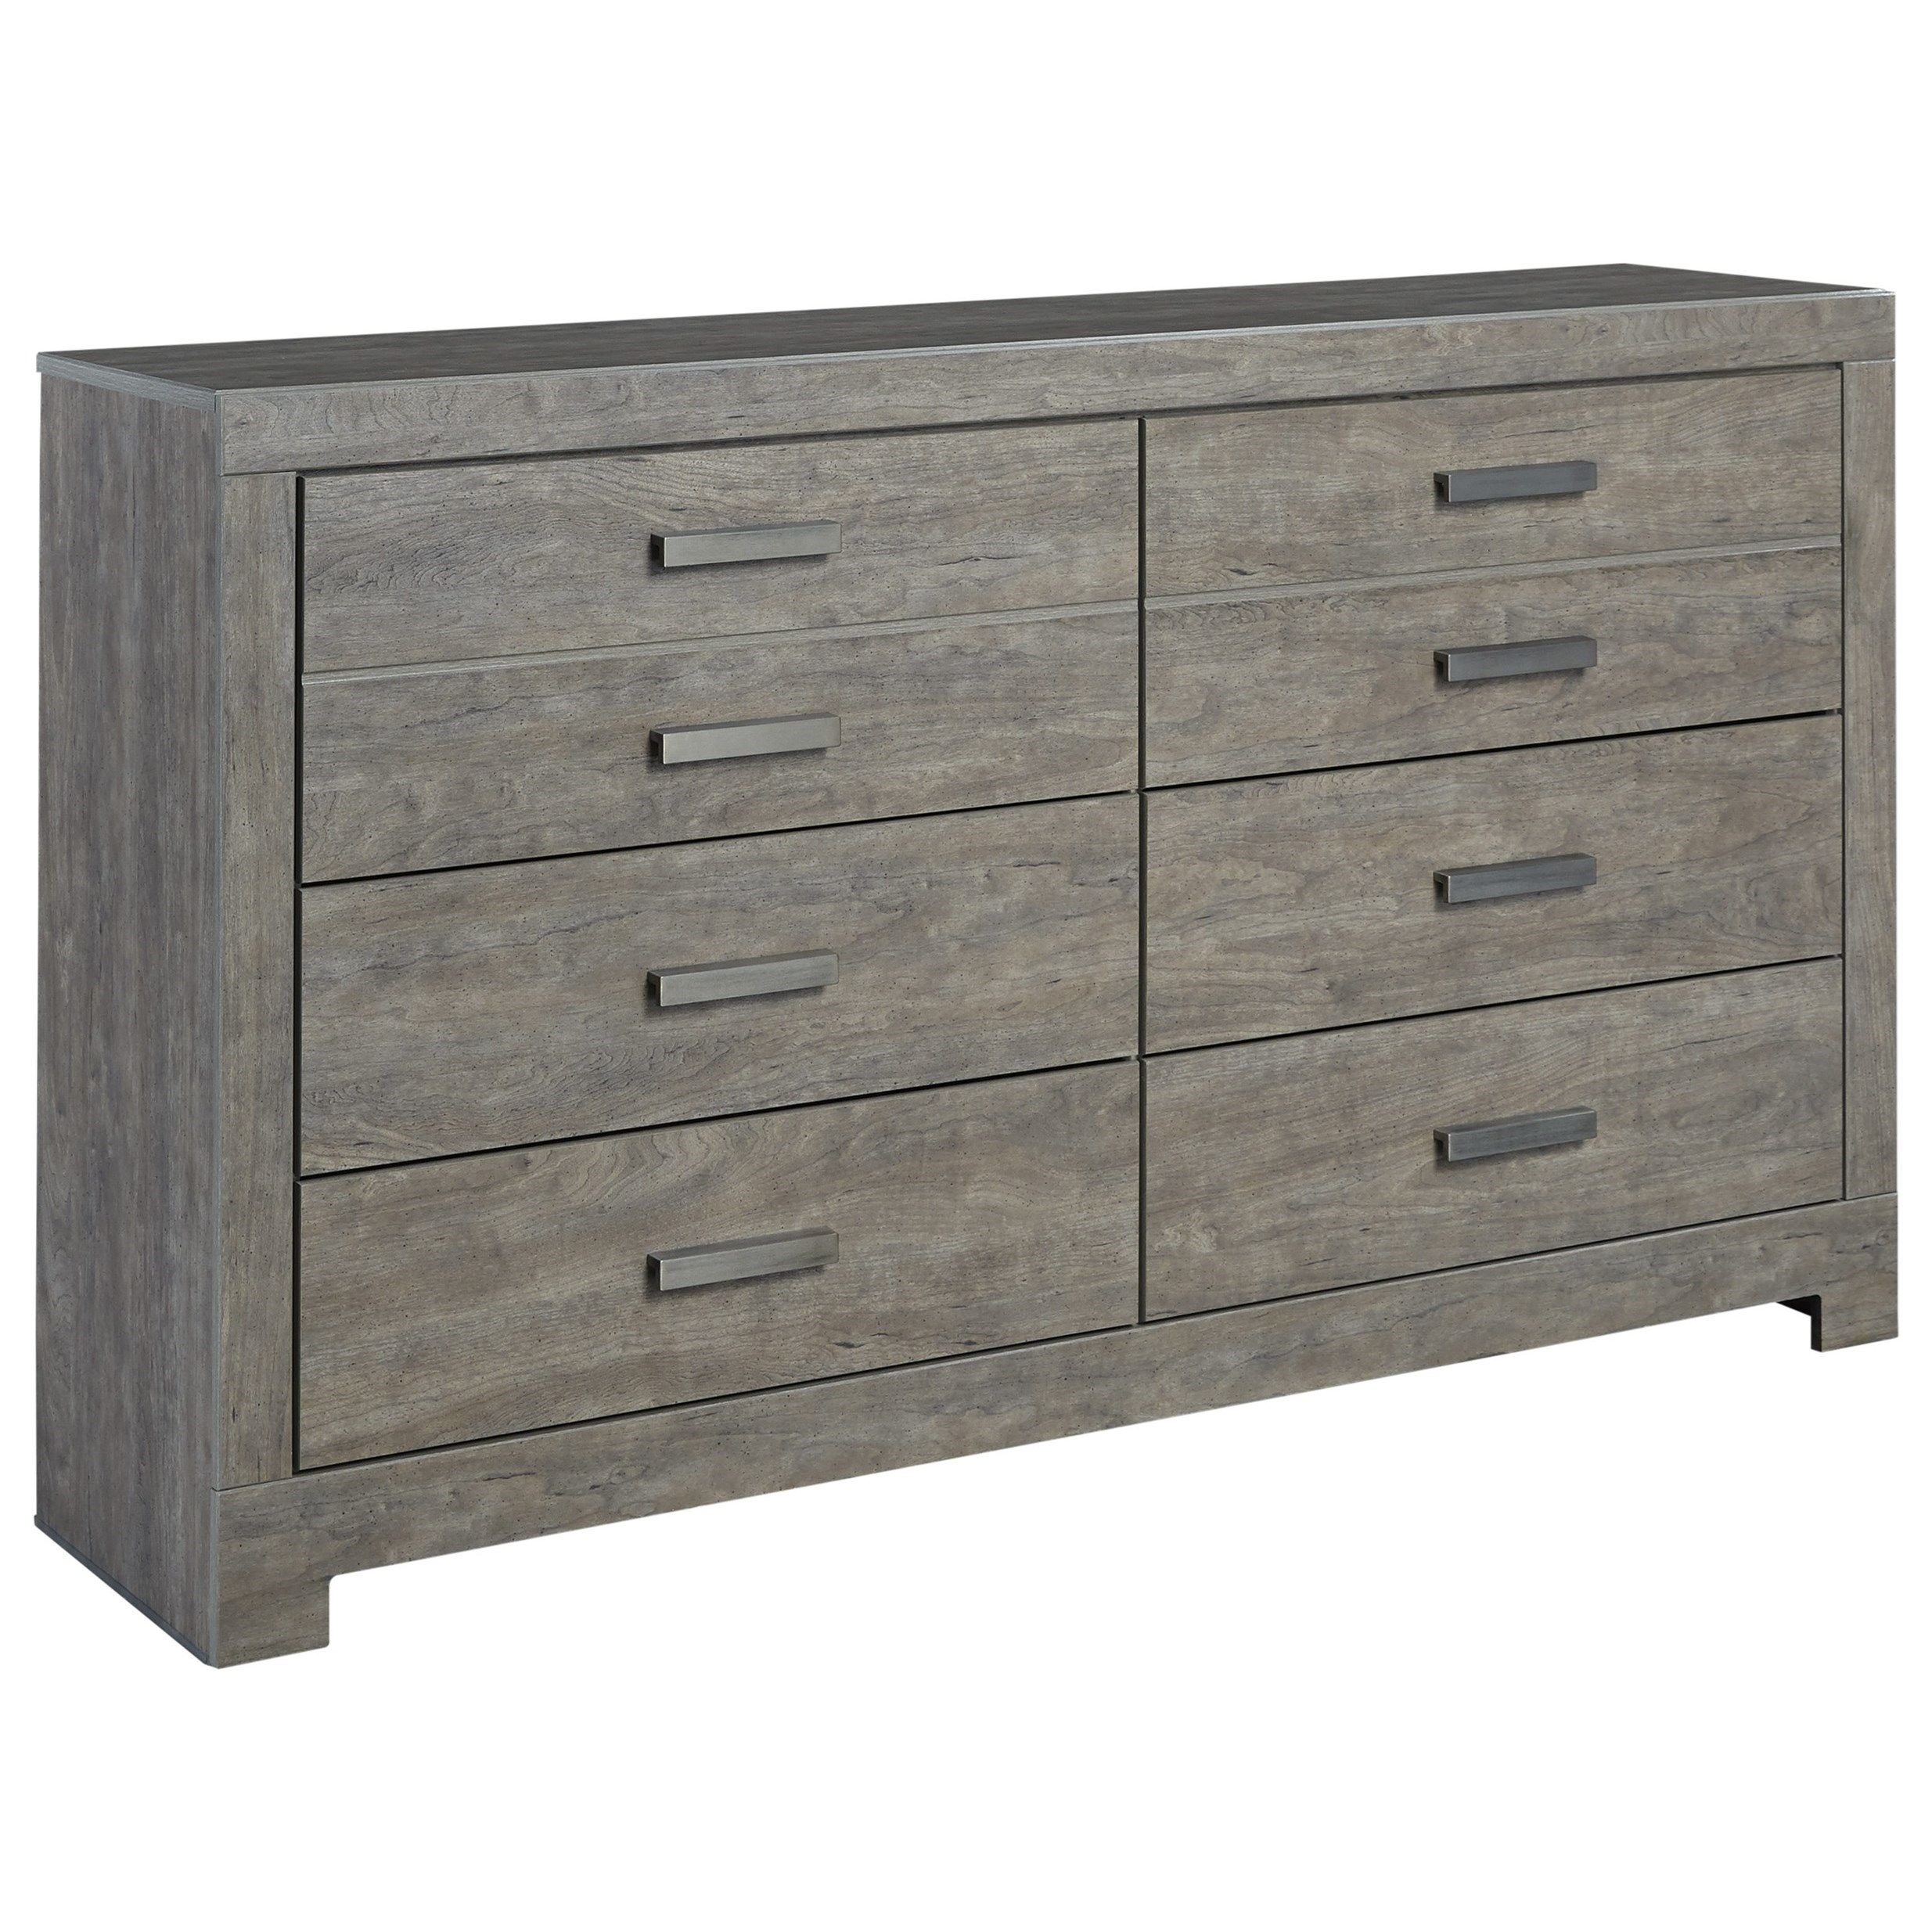 Culverbach Dresser by Signature Design by Ashley Furniture